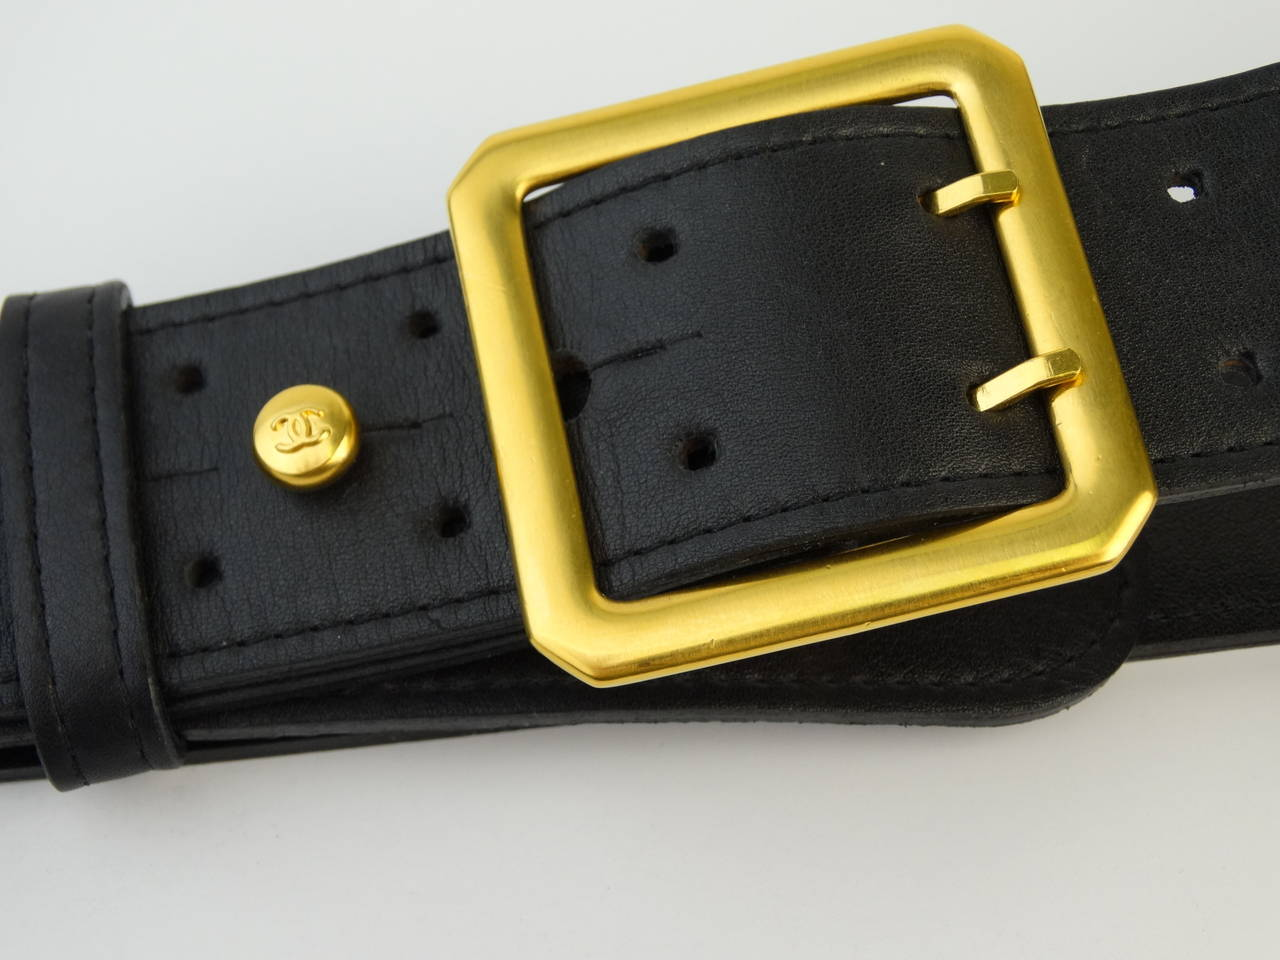 1996 Black Leather Chanel Belt with Gold Chain 2